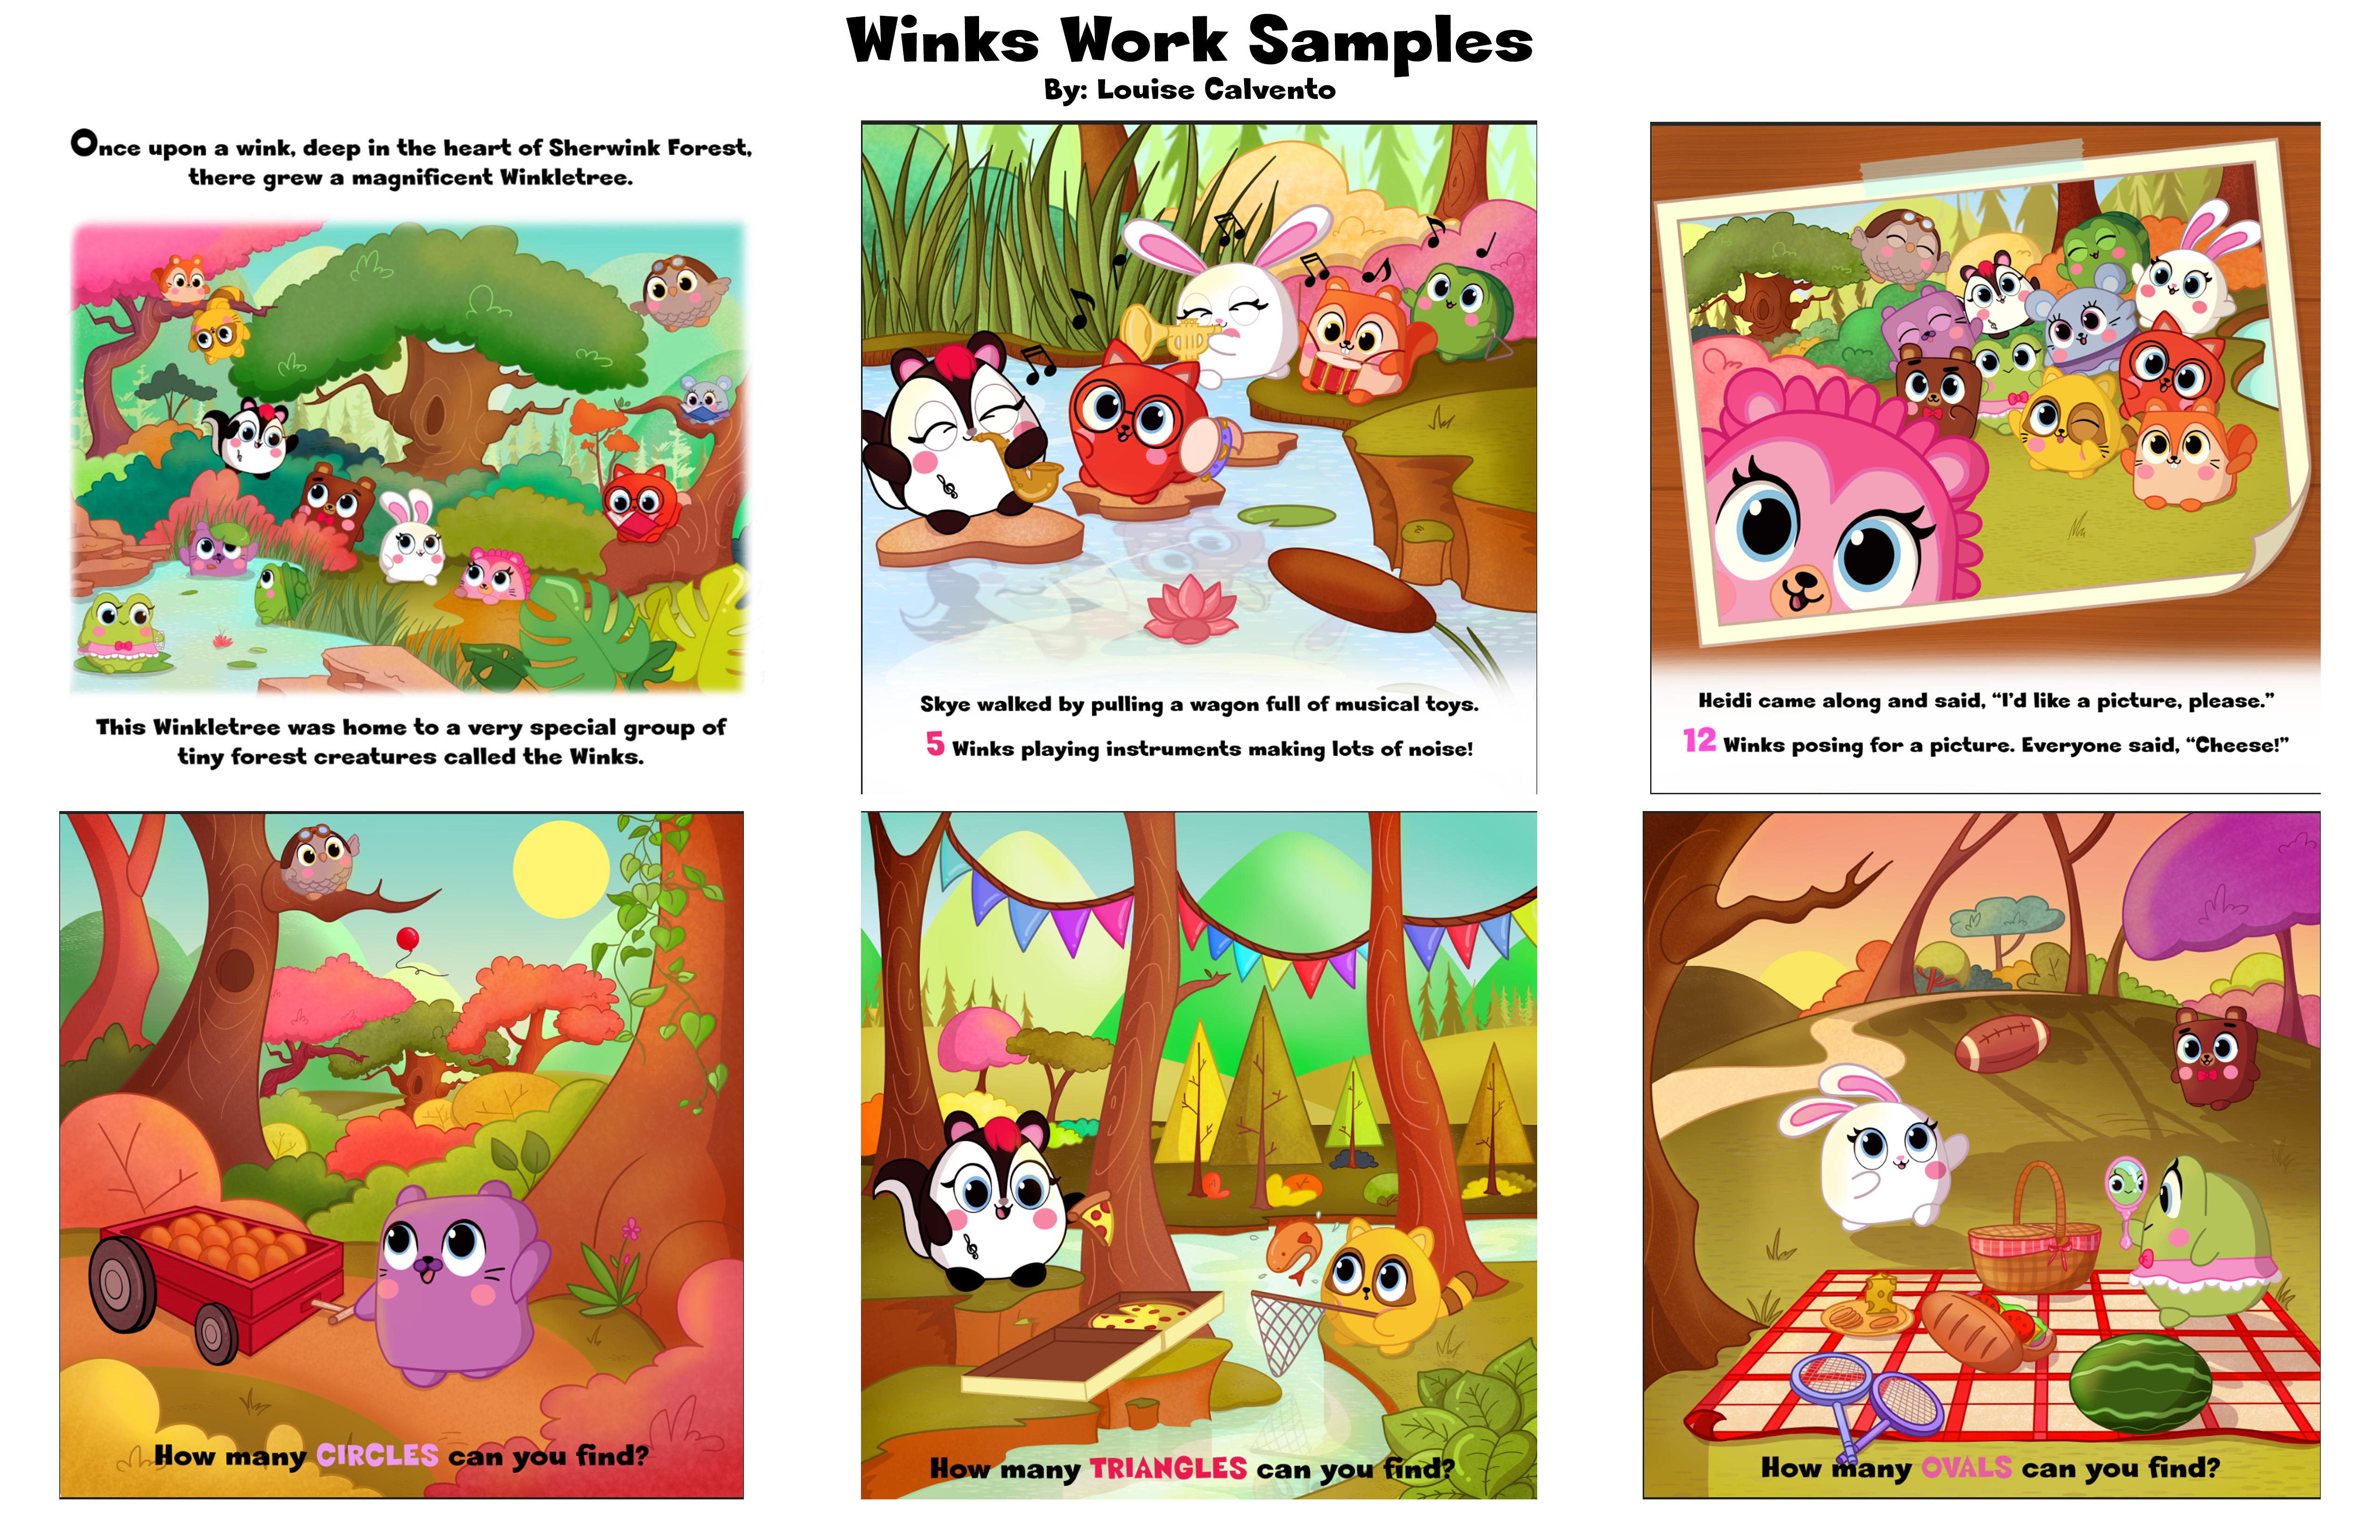 Winks Work Sample